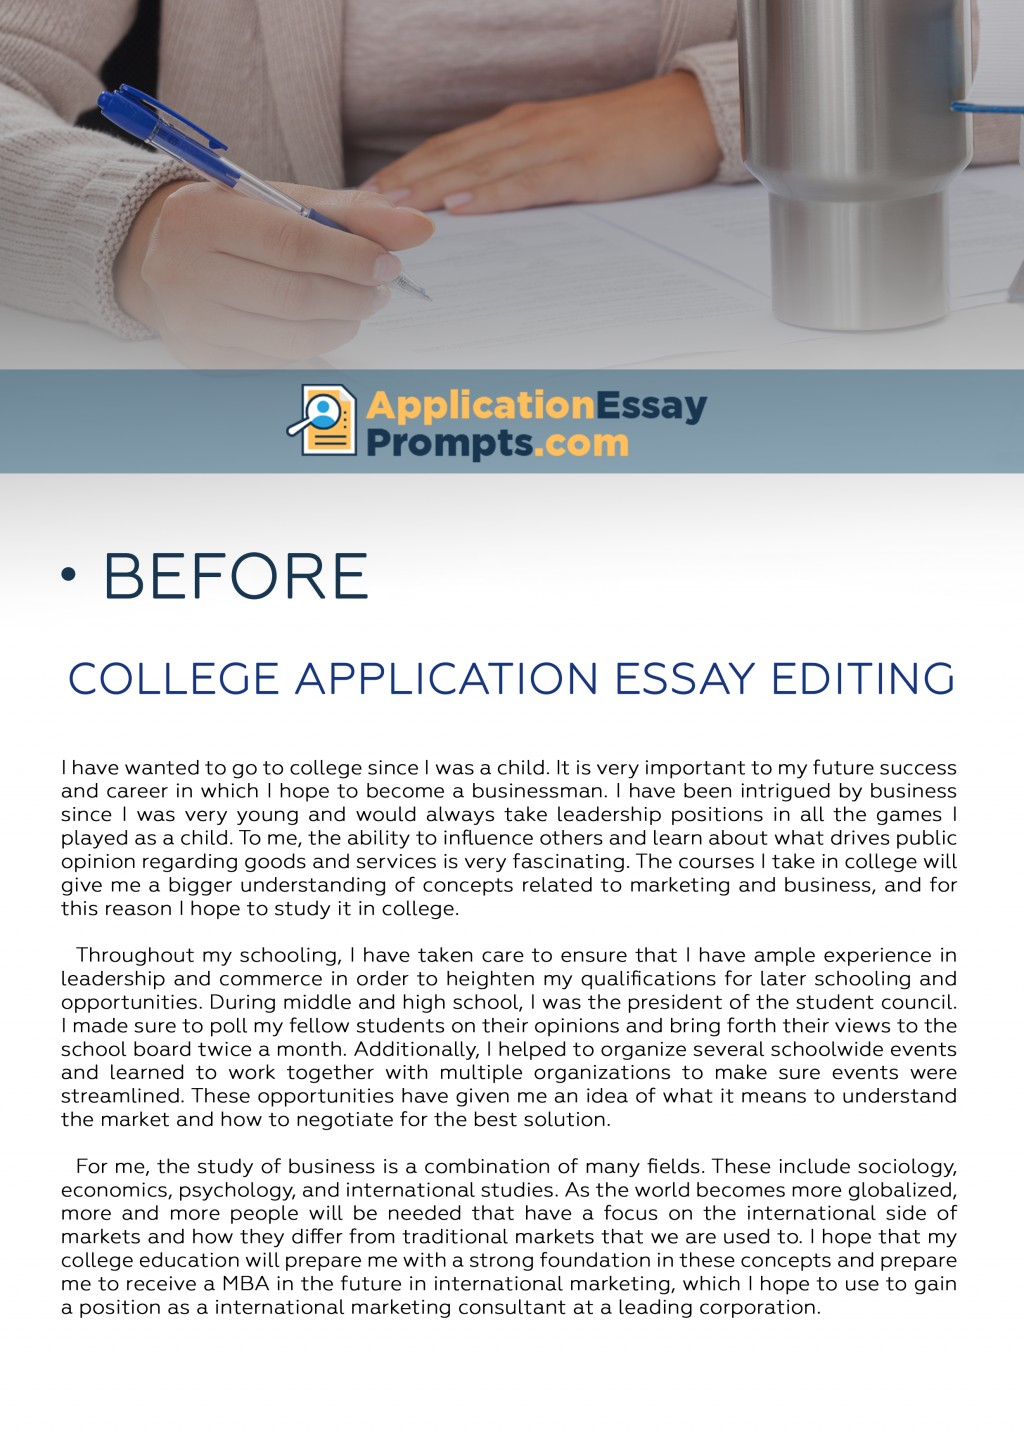 019 College Essay Editing Before Amazing Best Services Application Free Checklist Large